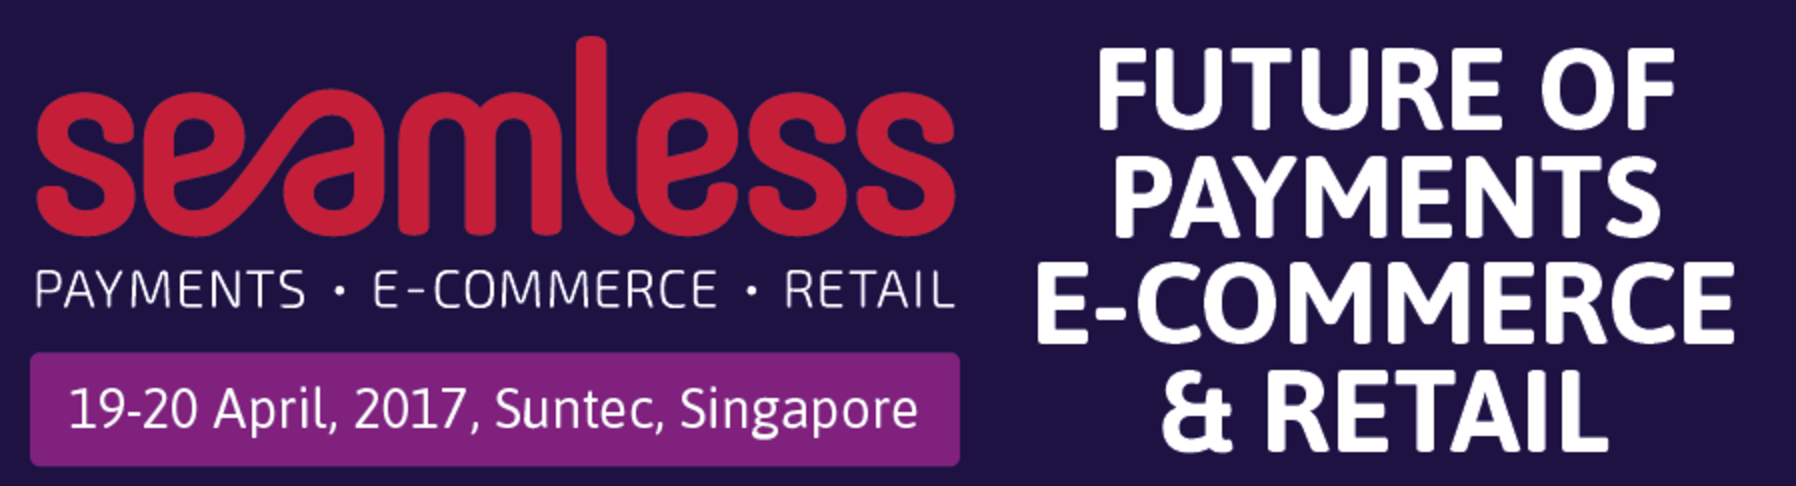 FUTURE OF PAYMENTS, ECOMMERCE & RETAIL   Seamless 2017   Wine subscription